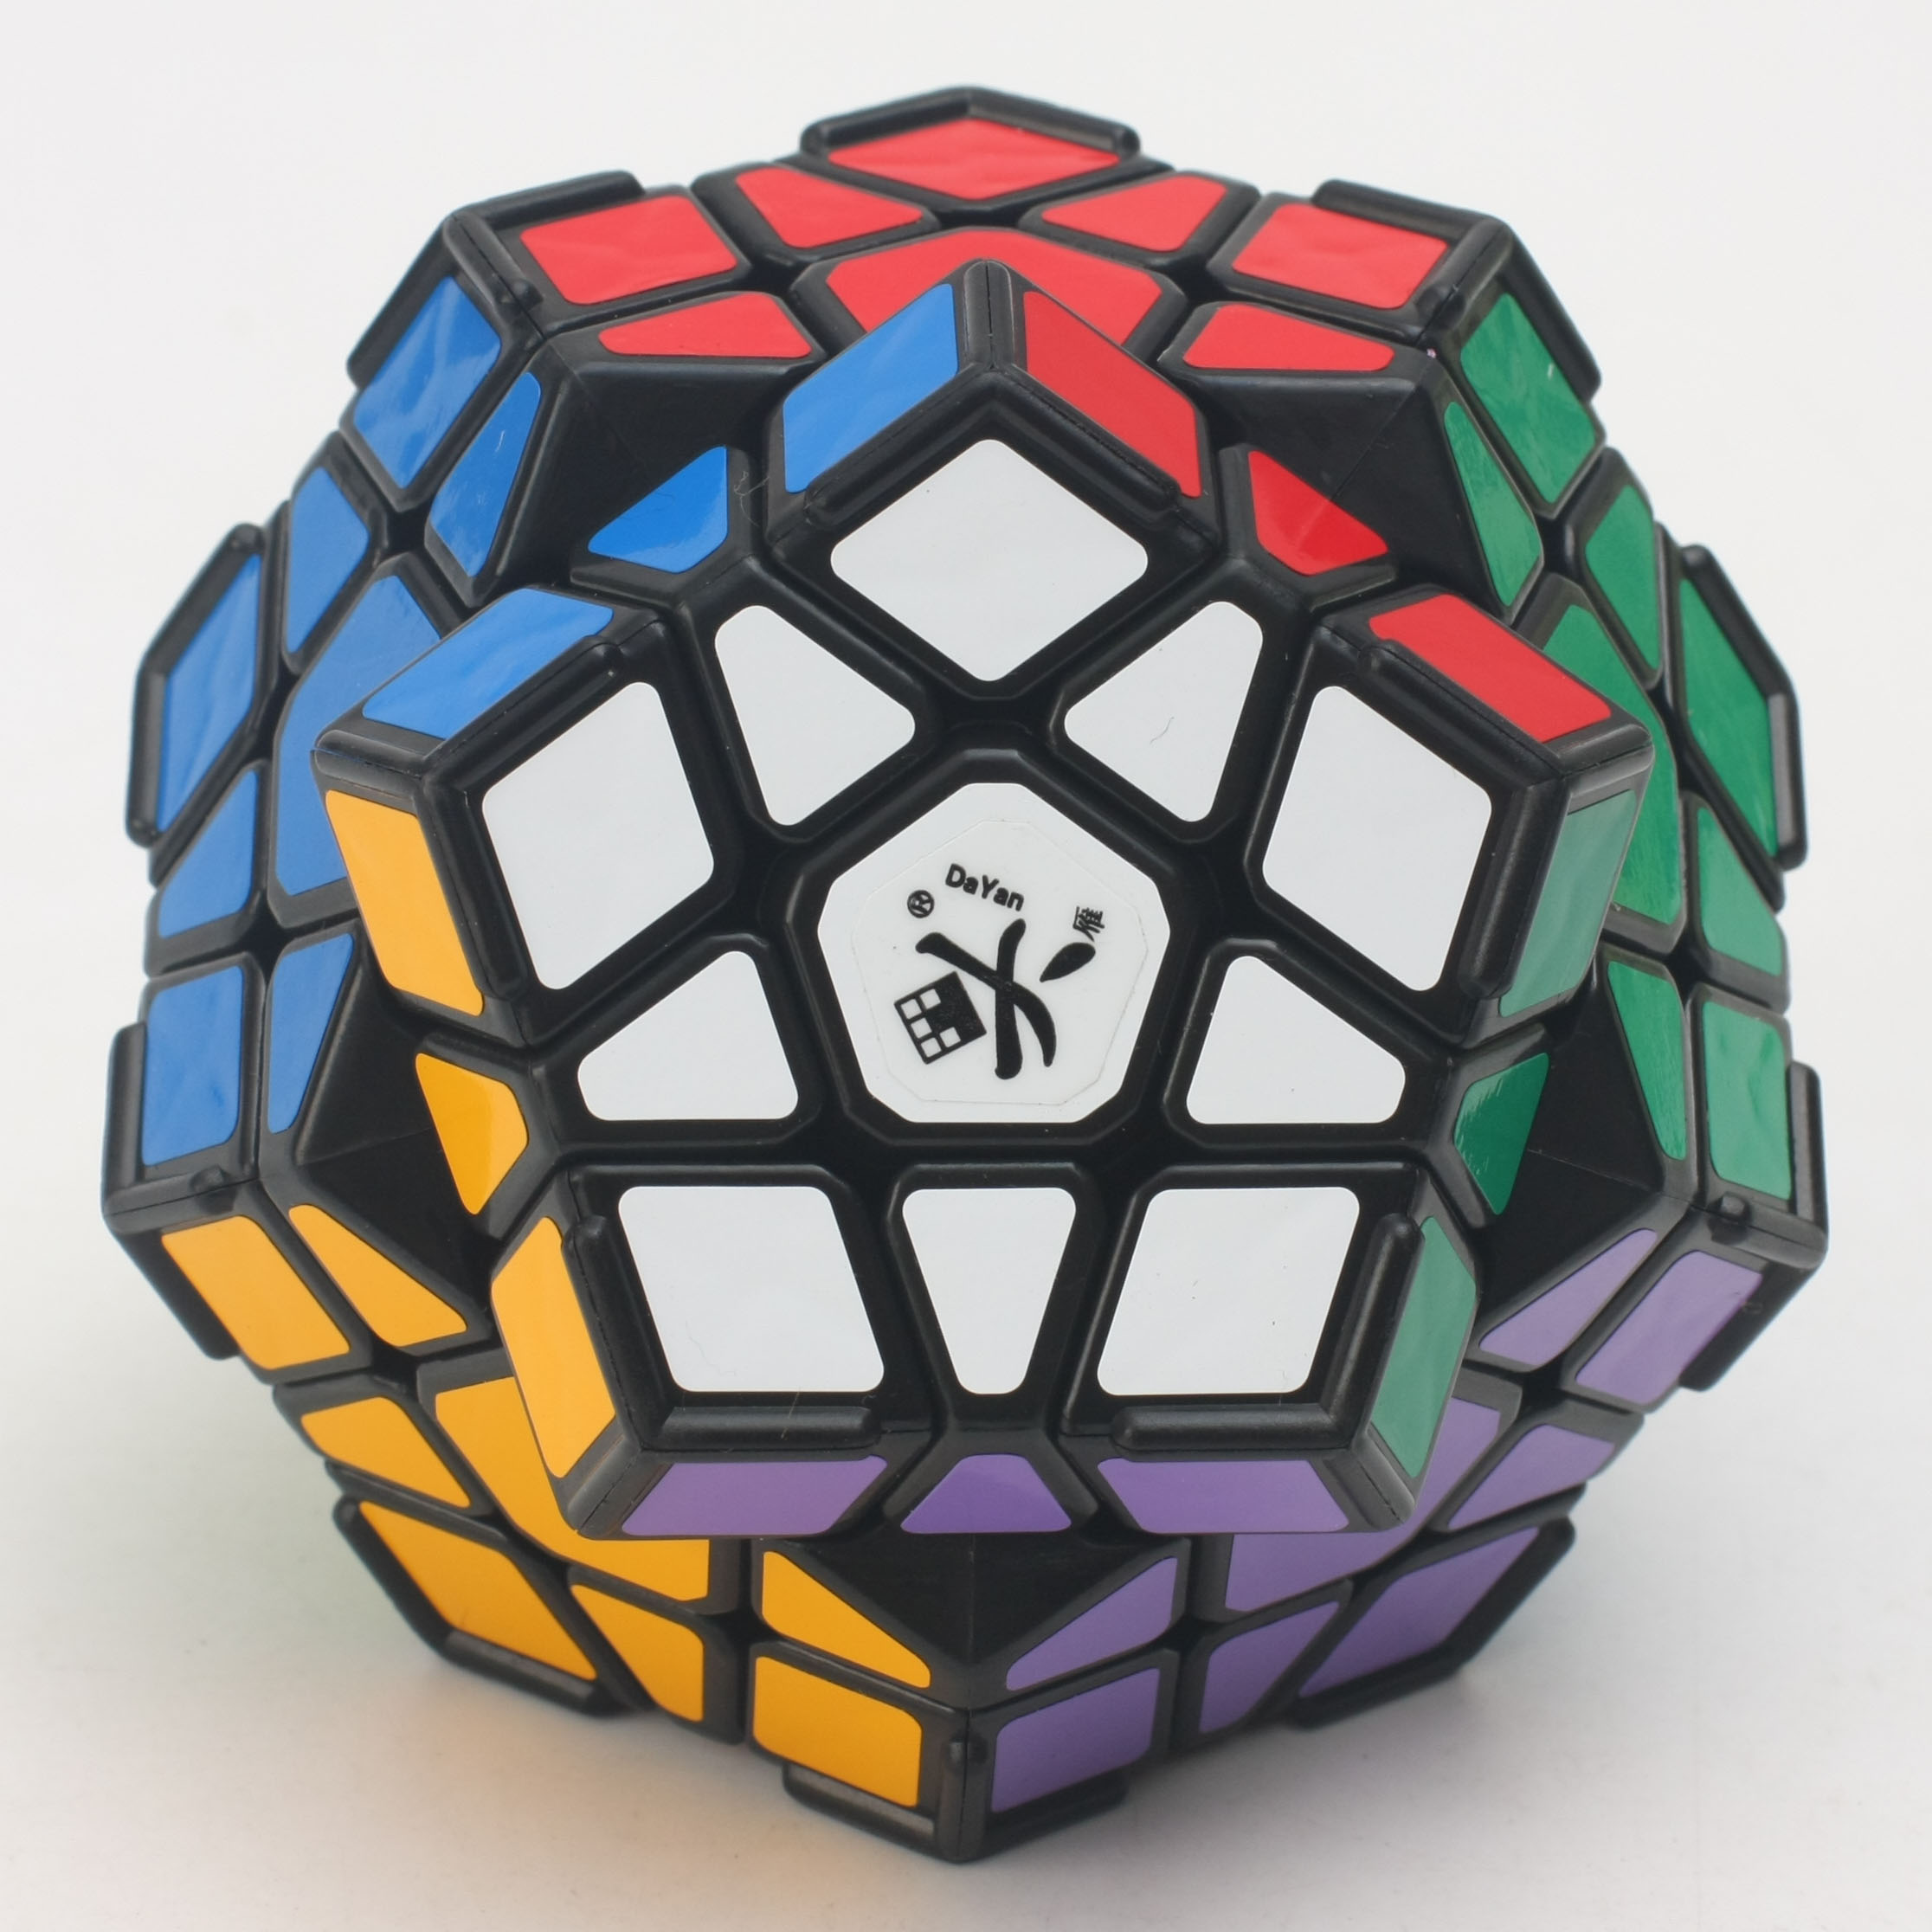 DaYan 3x3 Dodecahedron Magic Cube Speed Puzzles Toy Learning & Education Cubo Magico Personalizado Game Cube Toys Drop Shipping